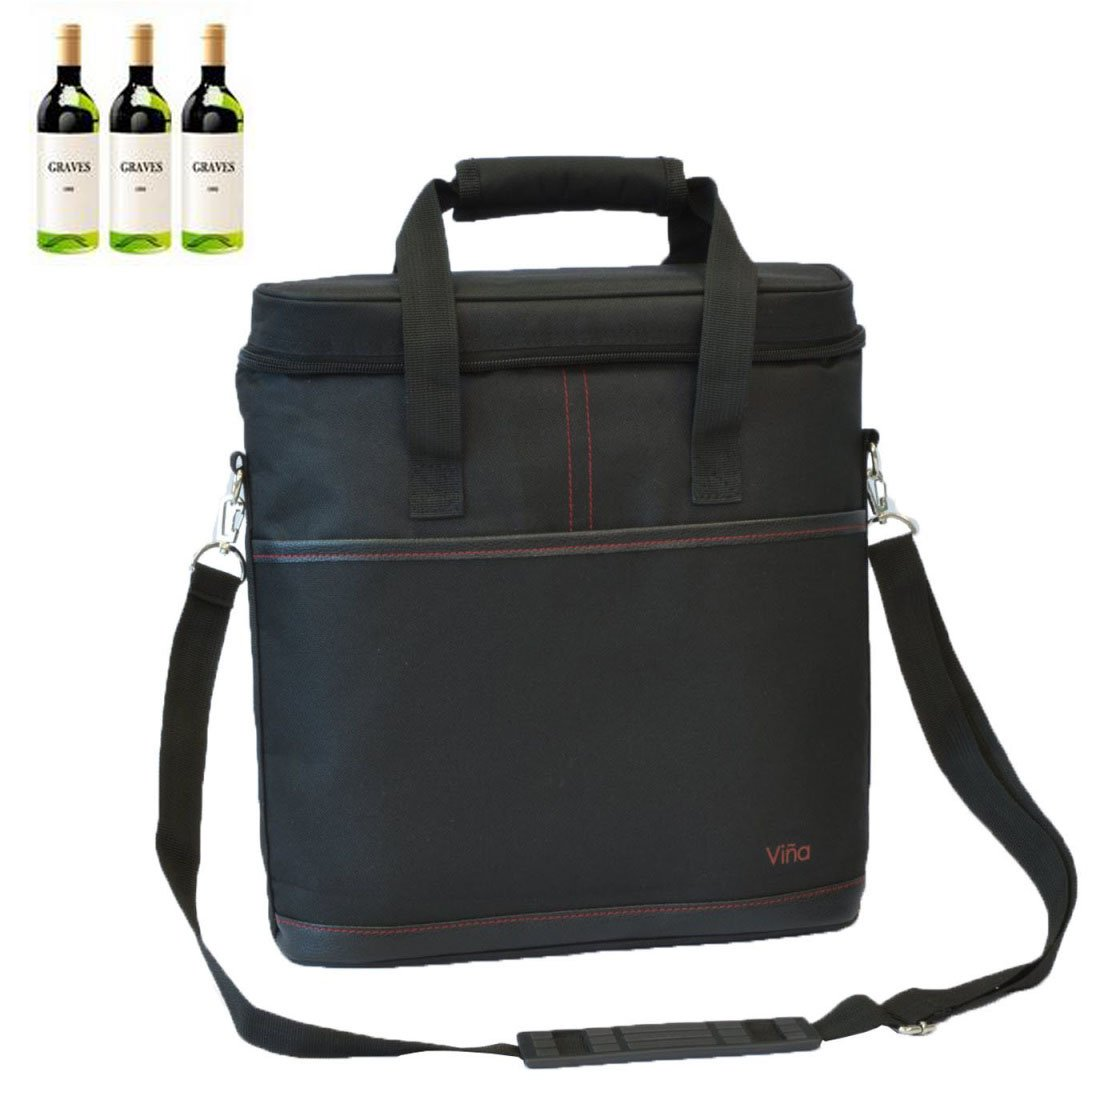 Vina 3 Bottles Wine Travel Carrier Tote, Champagne Cooler Insulated Picnic Food Bag